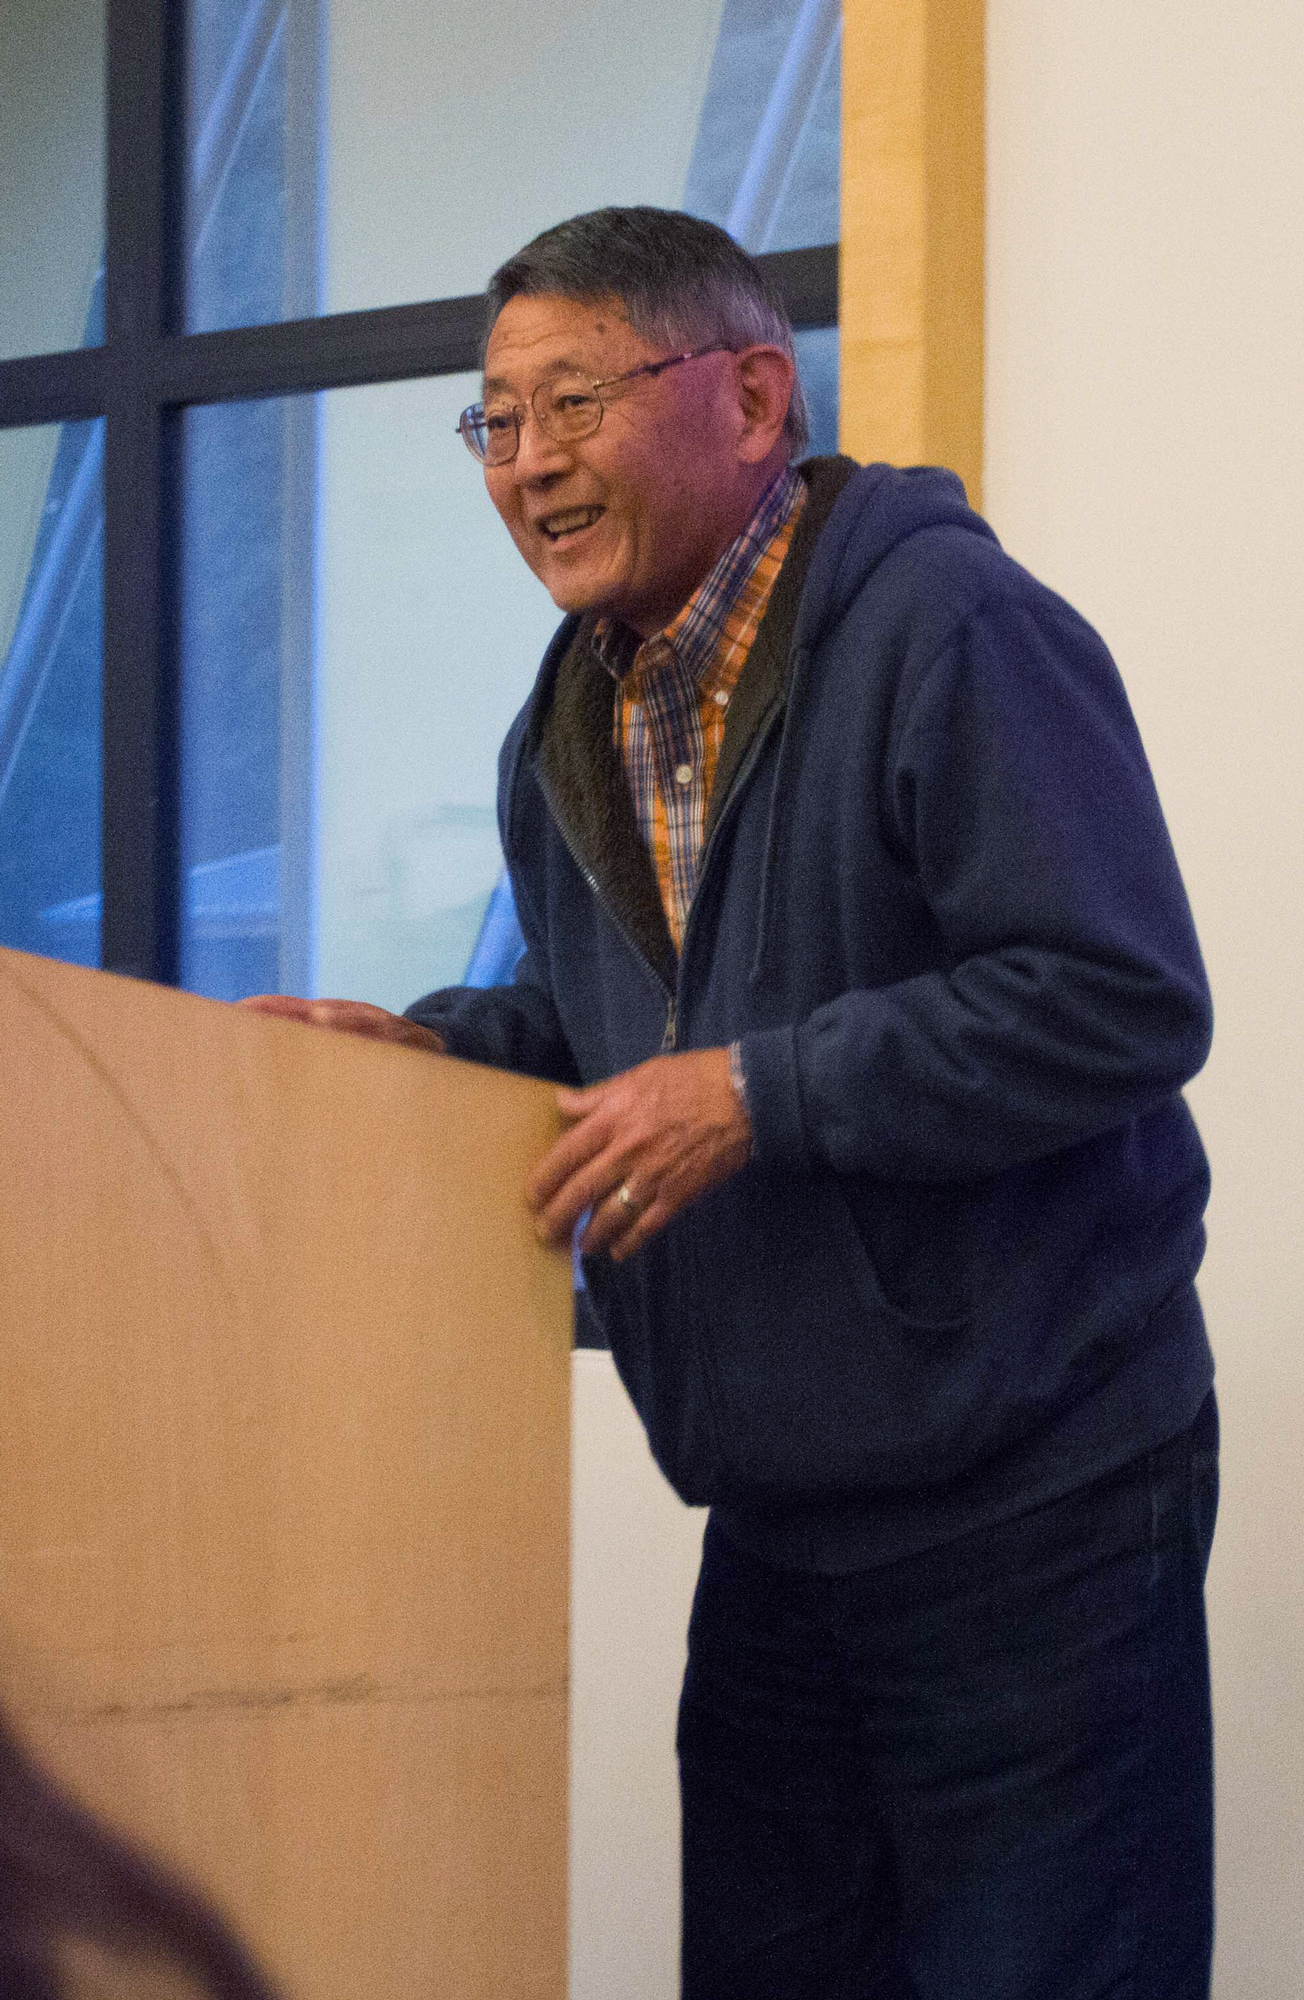 Victor Kimura, founding staff member at UCSC, spoke about his experience in the Japanese internment camps. Photo by Sean MacNaughton